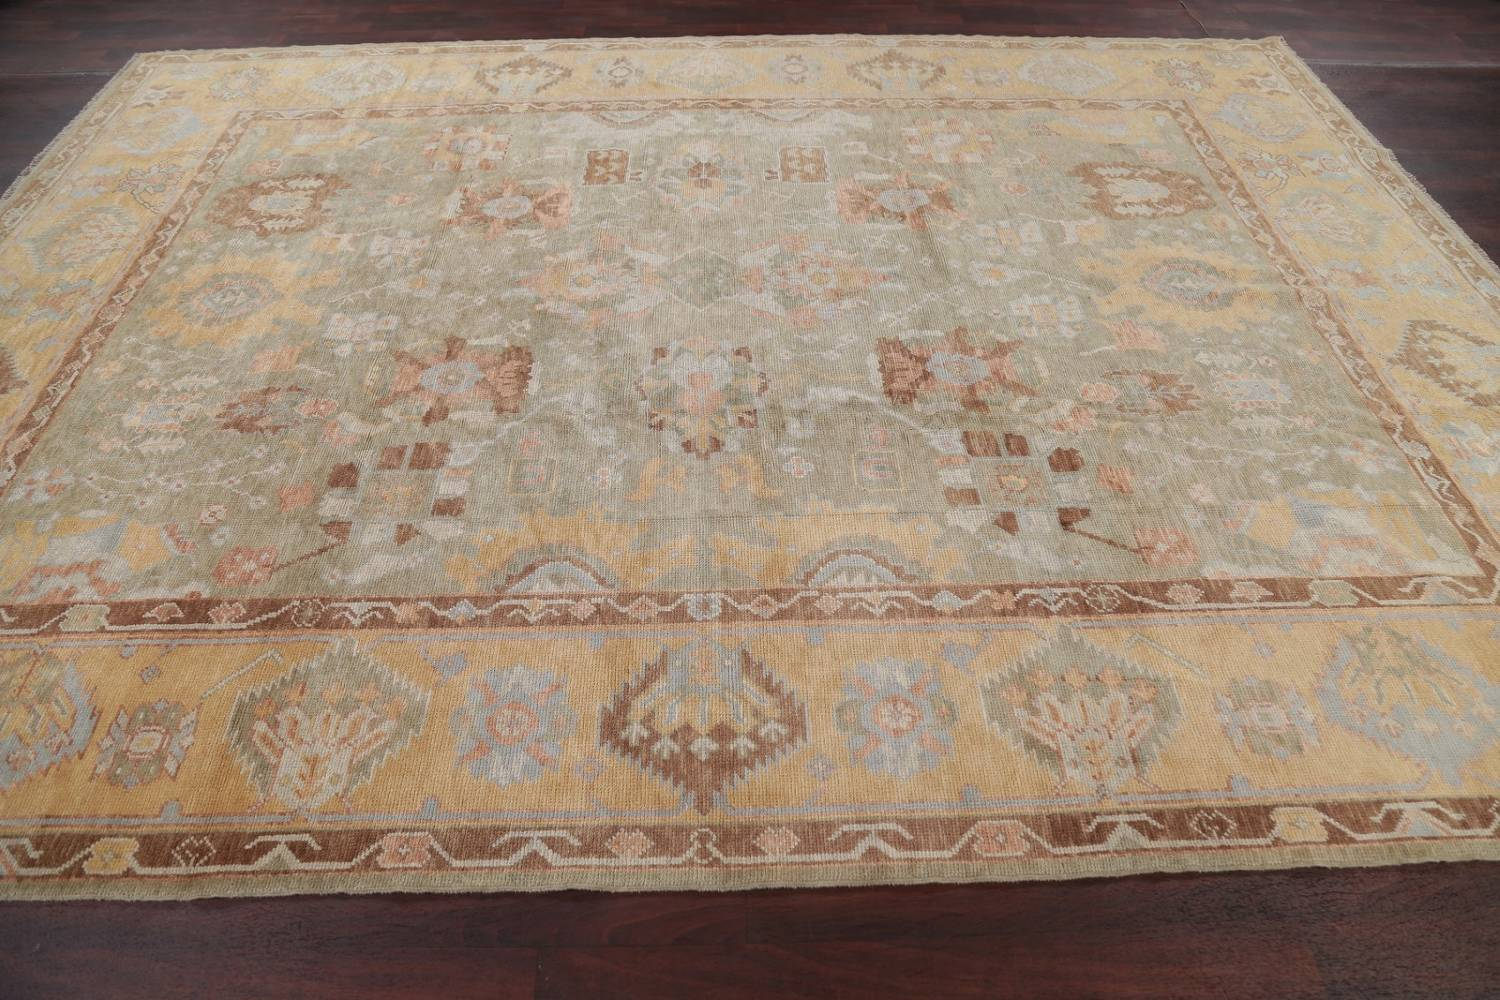 Vegetable Dye Muted Green Oushak Turkish Hand-Knotted Area Rug 9x12 image 15